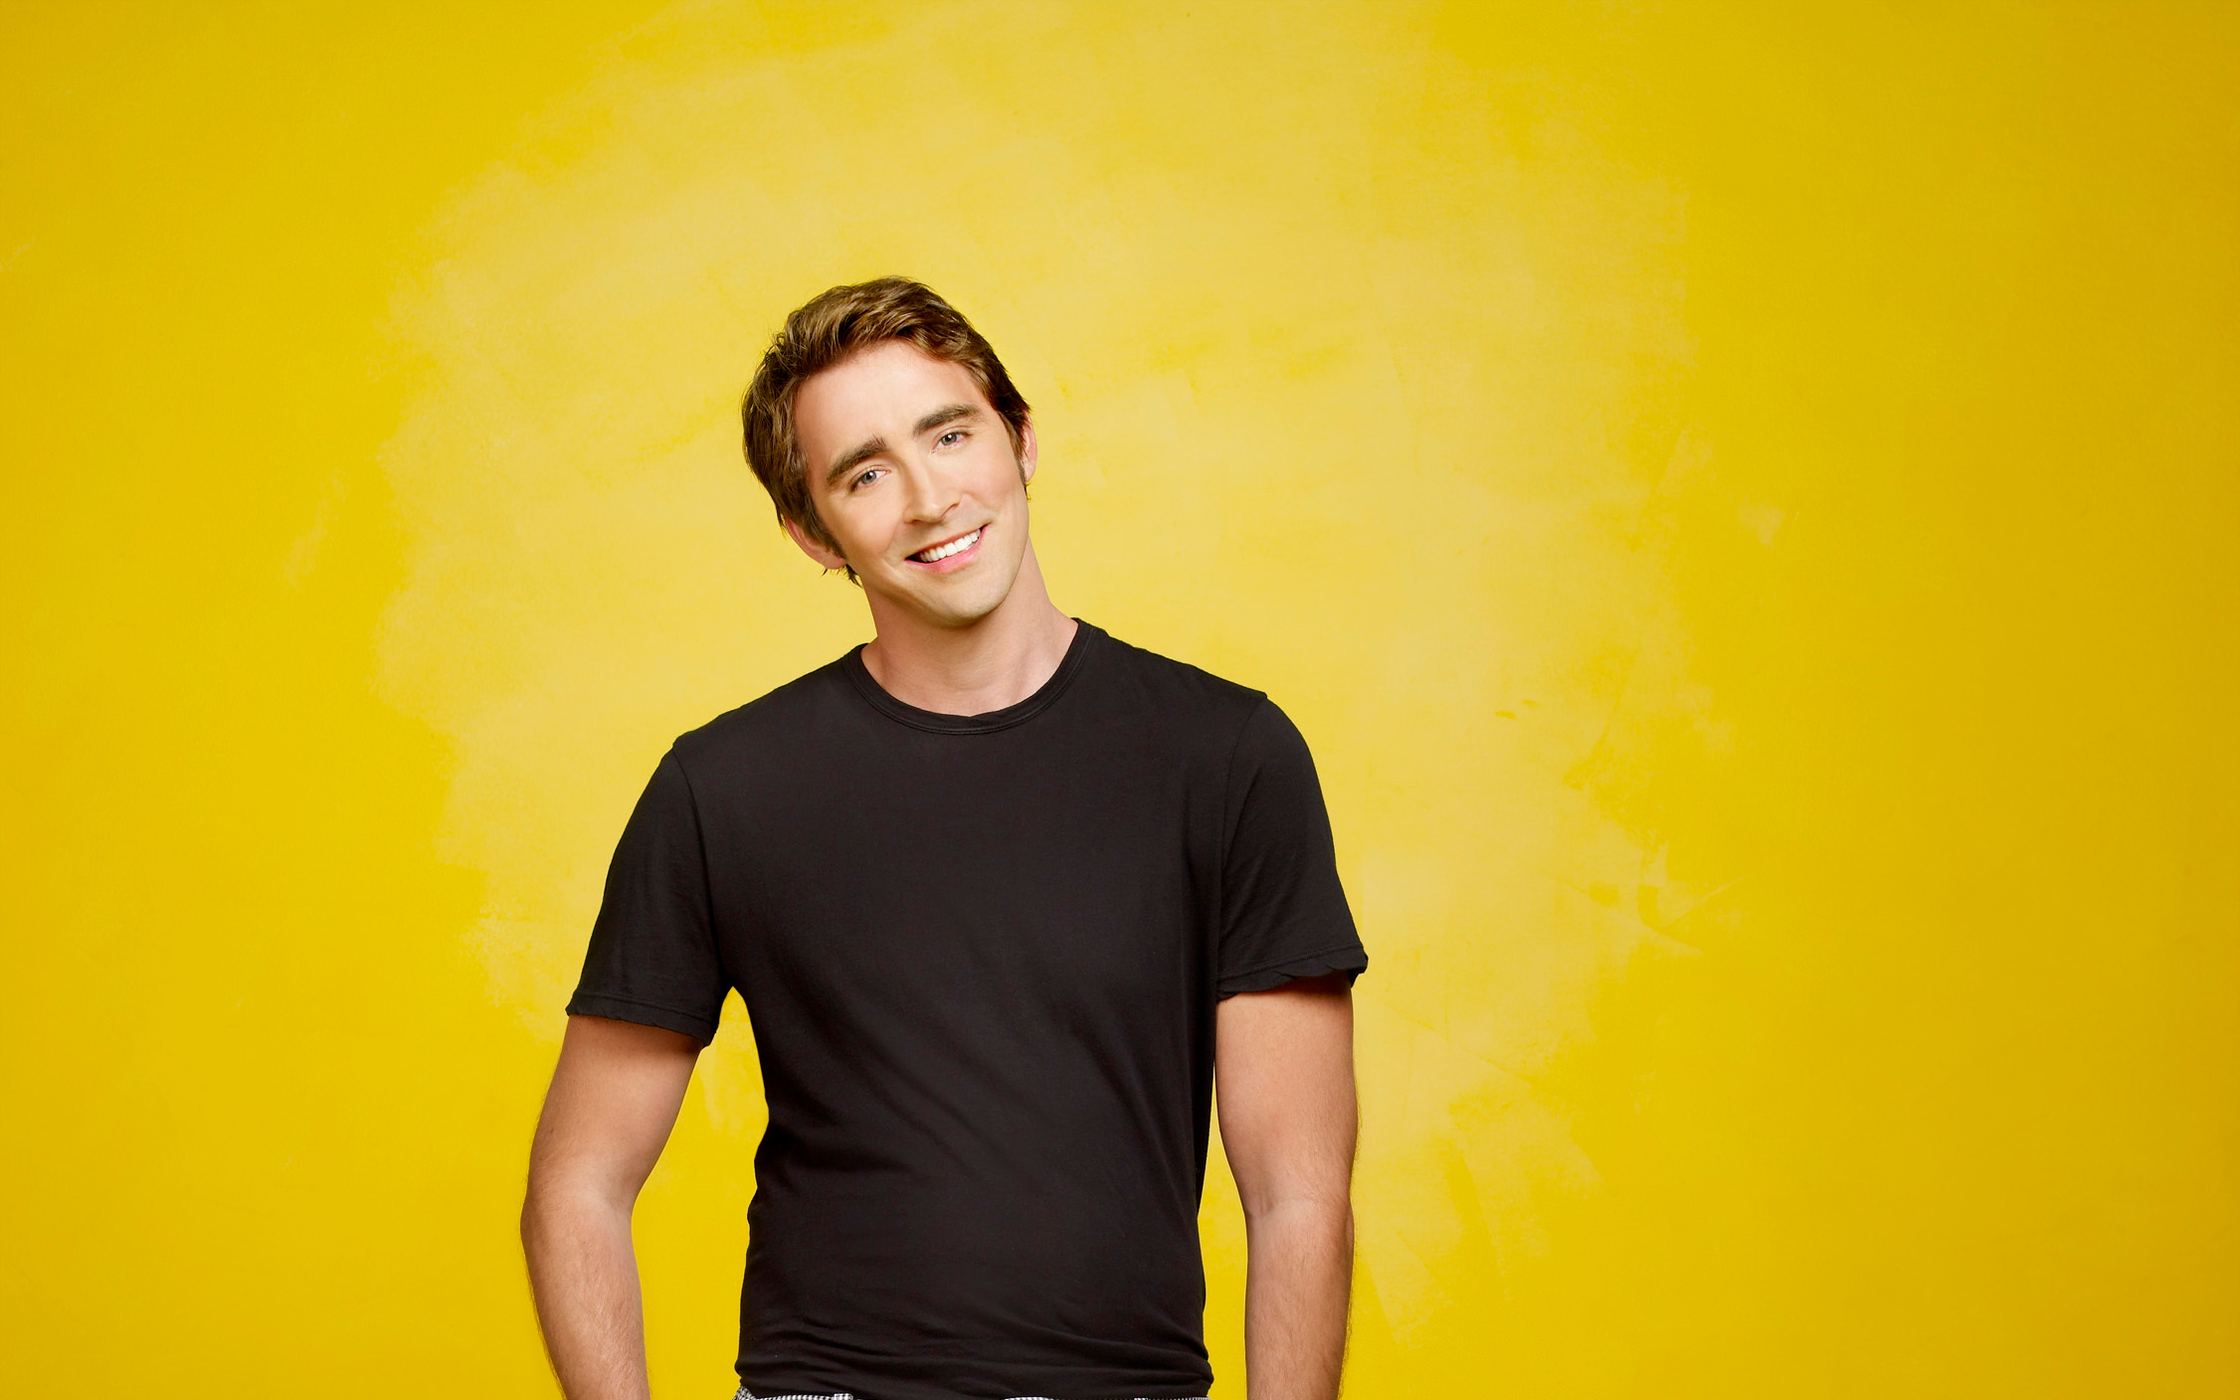 2240x1400 - Lee Pace Wallpapers 12